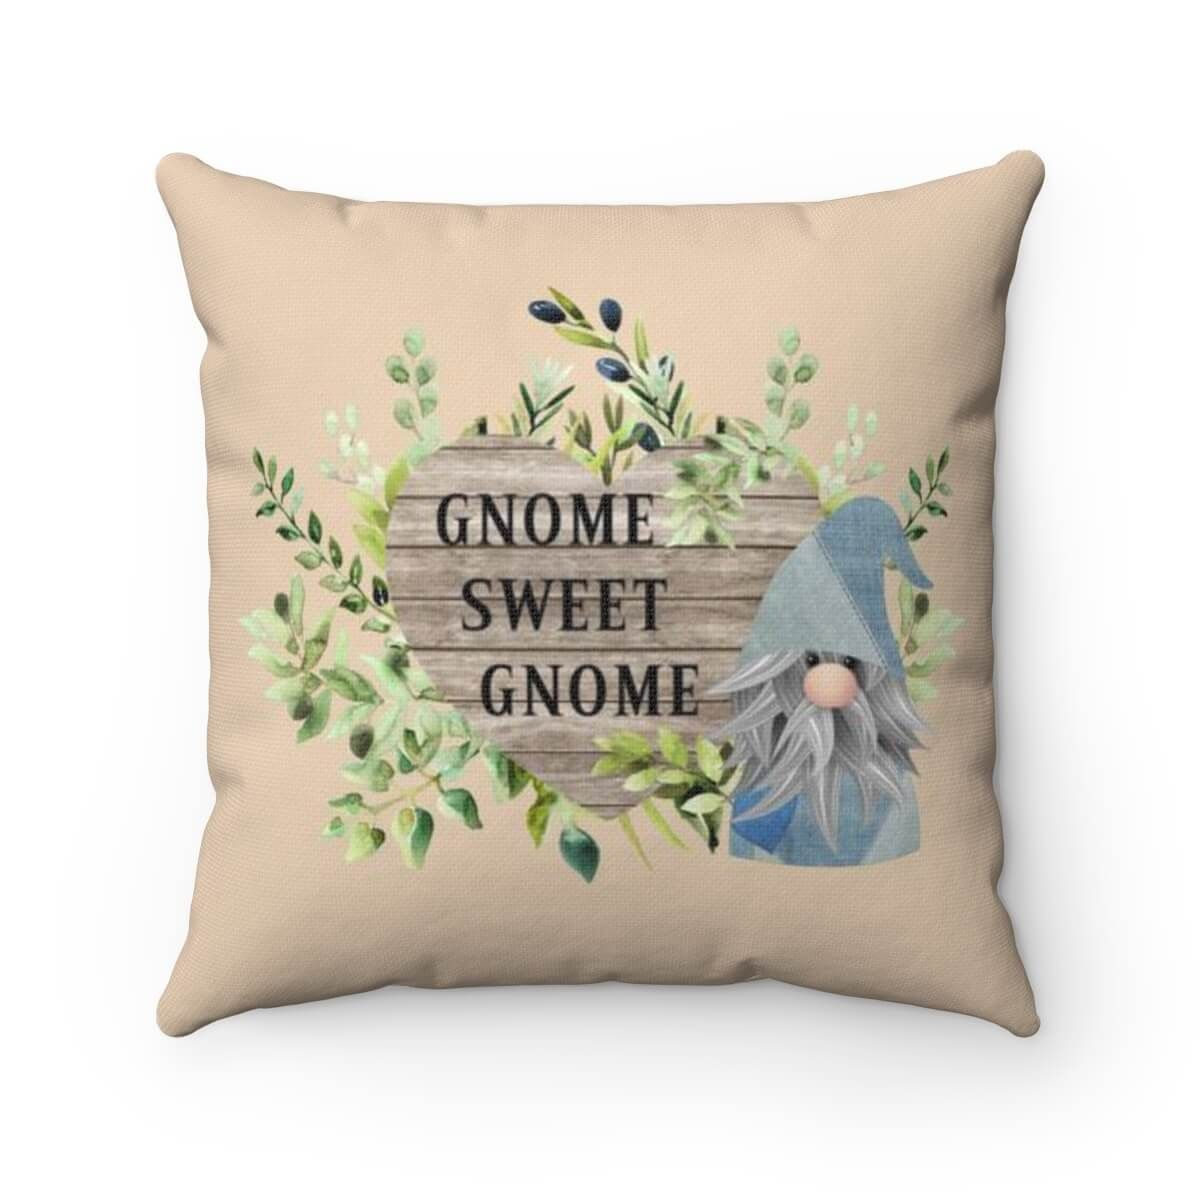 Gnome Sweet Gnome - Pillow - 18X18 / brickred / Cover + Pillow Insert